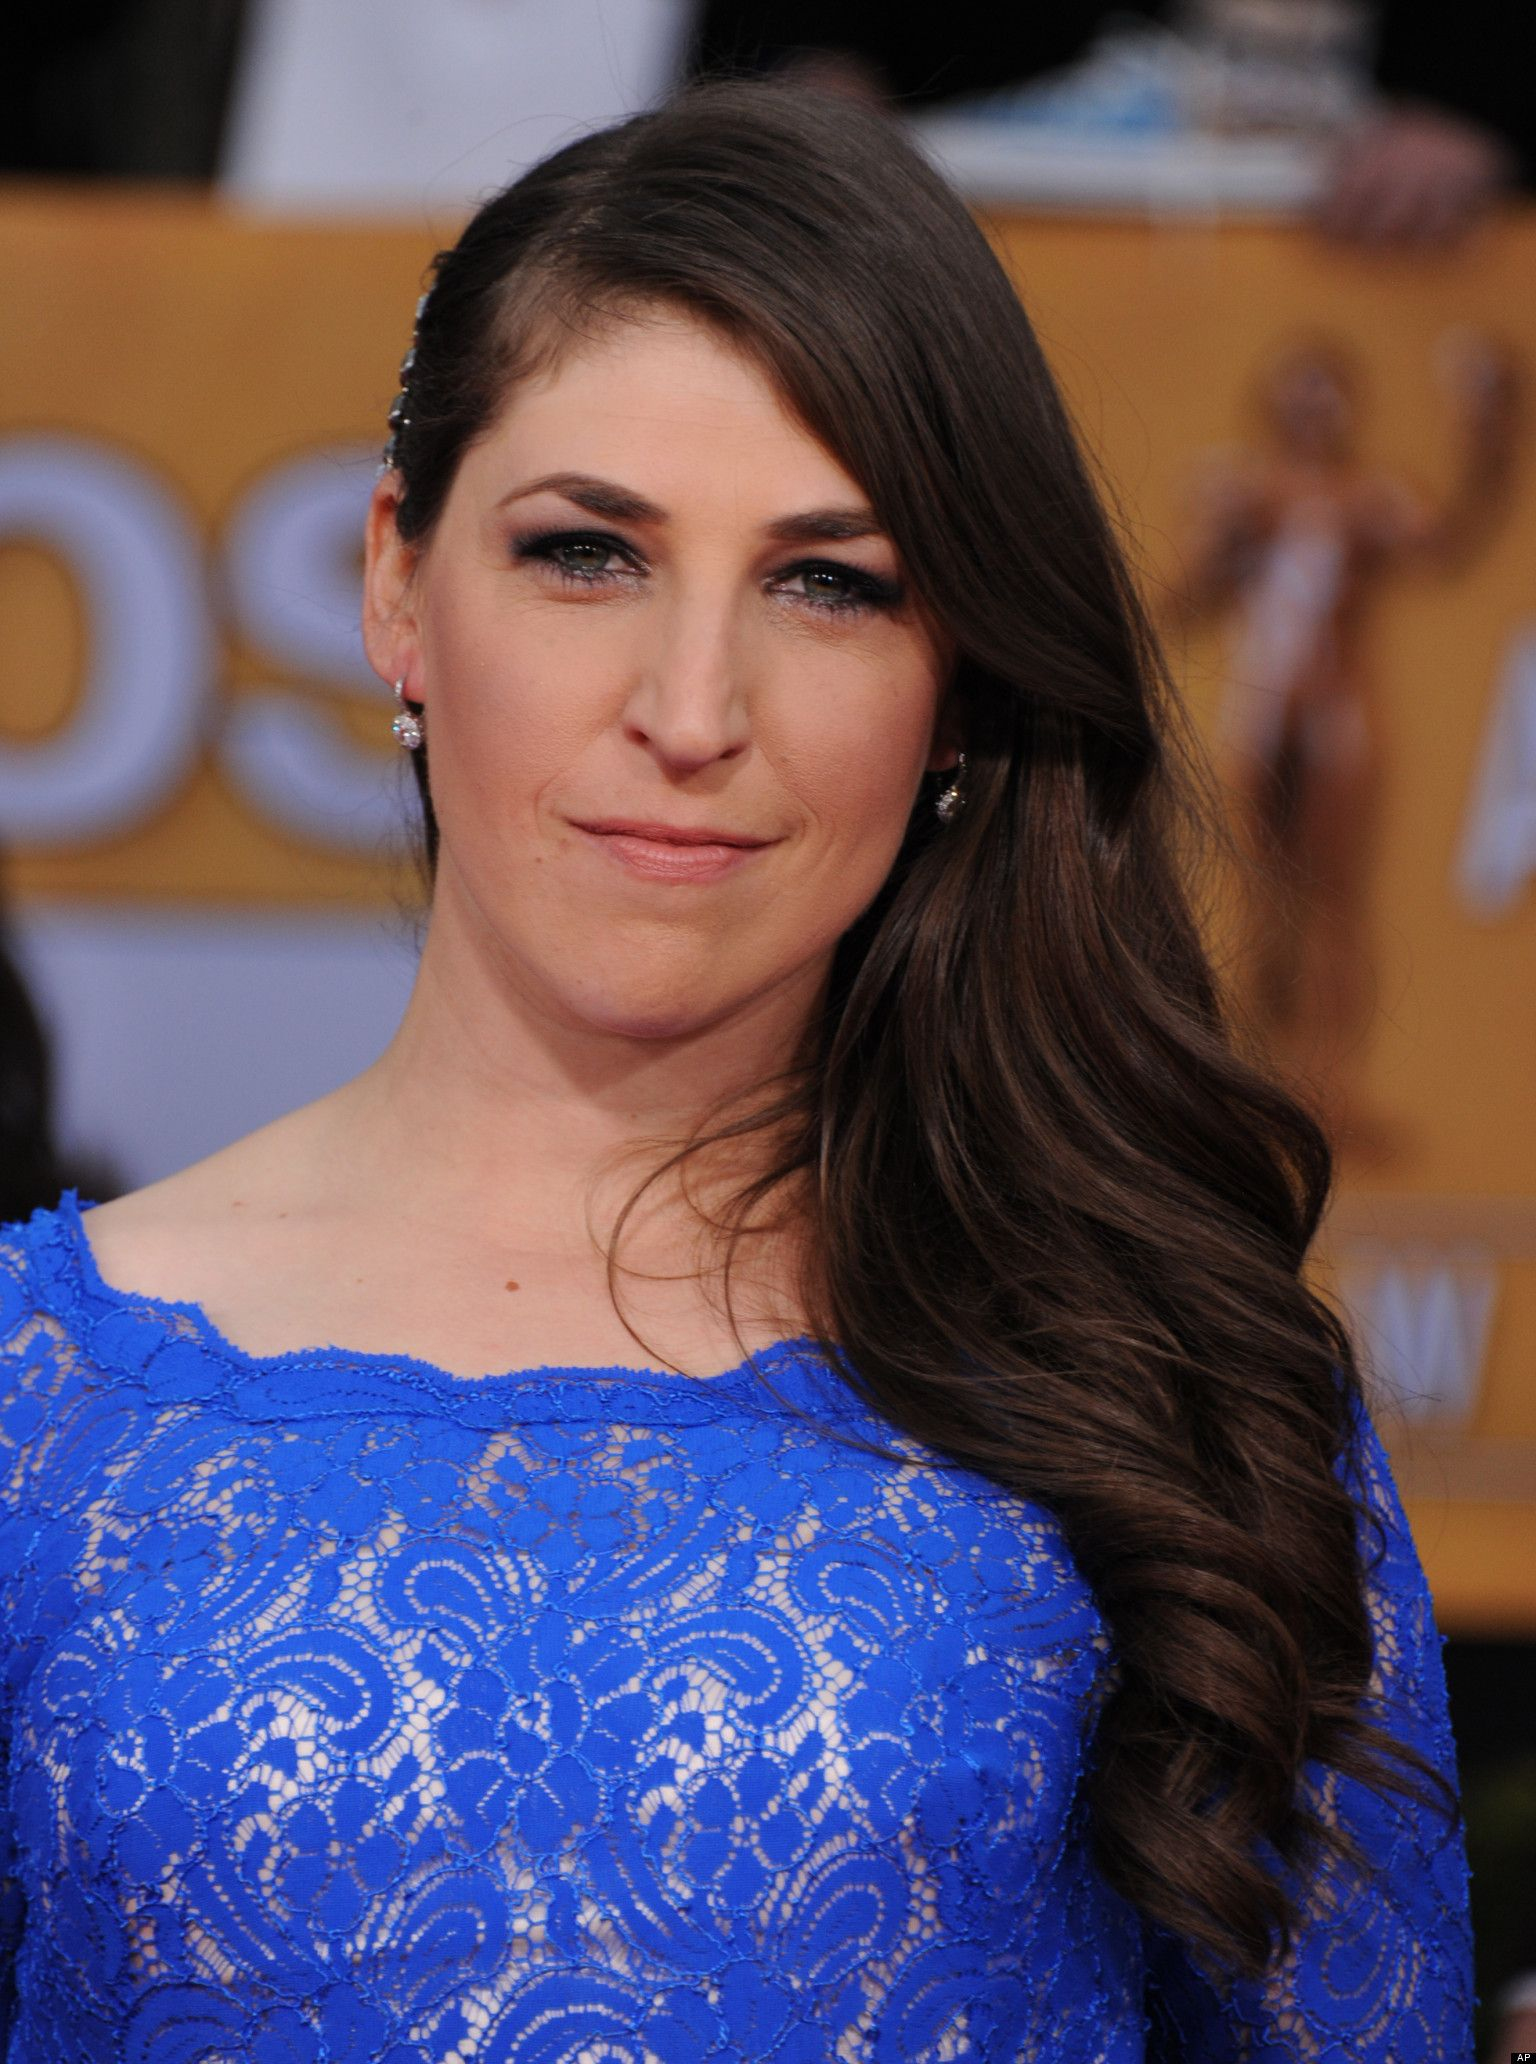 Dissertation Doctorate Degree Of Busines Administration Information For Student At The Uw Whitewater Mayim Bialik Hooray Hollywood Celebrities Doctor